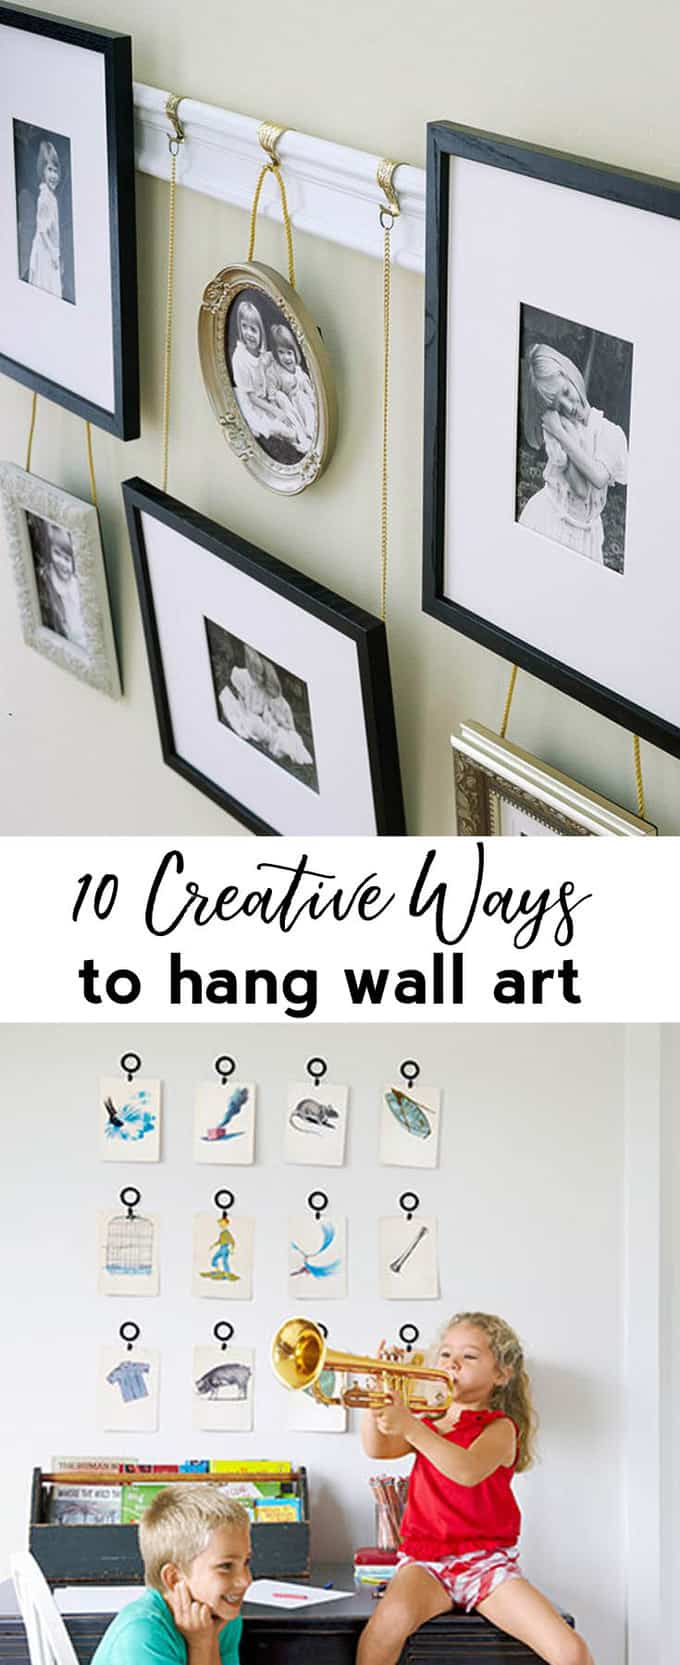 ways to hang artw